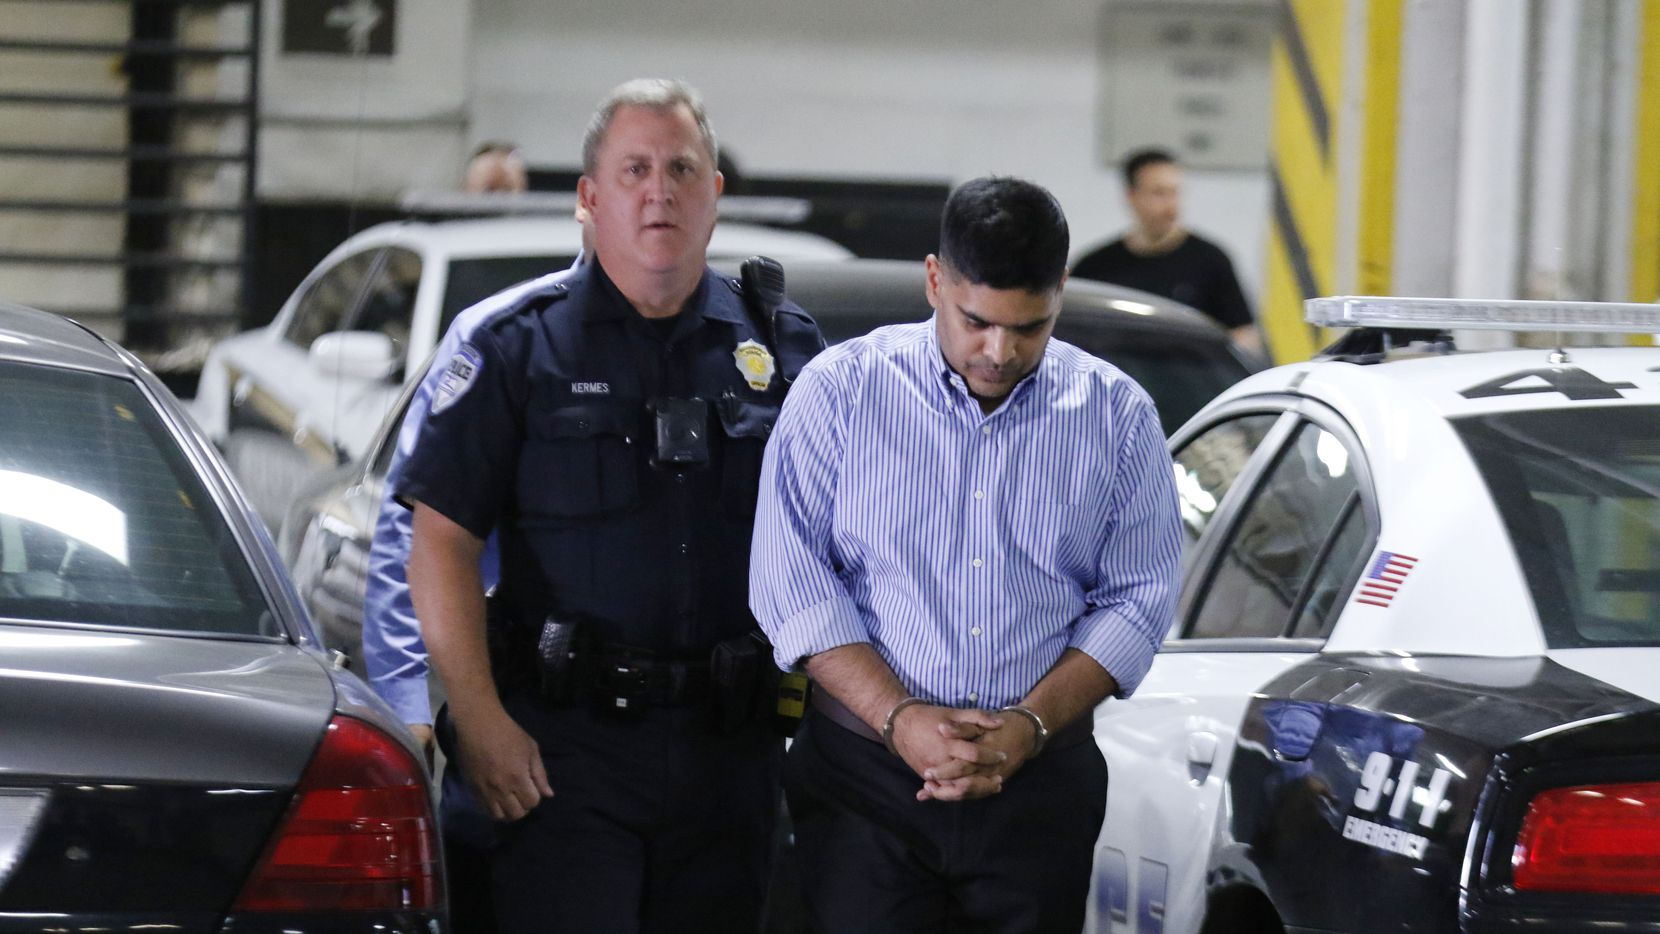 Wesley Mathews, right, adoptive father of Sherin Mathews, was arrested and charged with Injury to a Child arrives at the Lew Sterrett Justice Center on Wednesday, October 25, 2017 in Dallas. He was transferred from the Richardson, Texas jail and his bail has been set at $1 million. He was arrested on Oct. 23, 2017 after offering a new account of how his daughter went missing two weeks earlier.